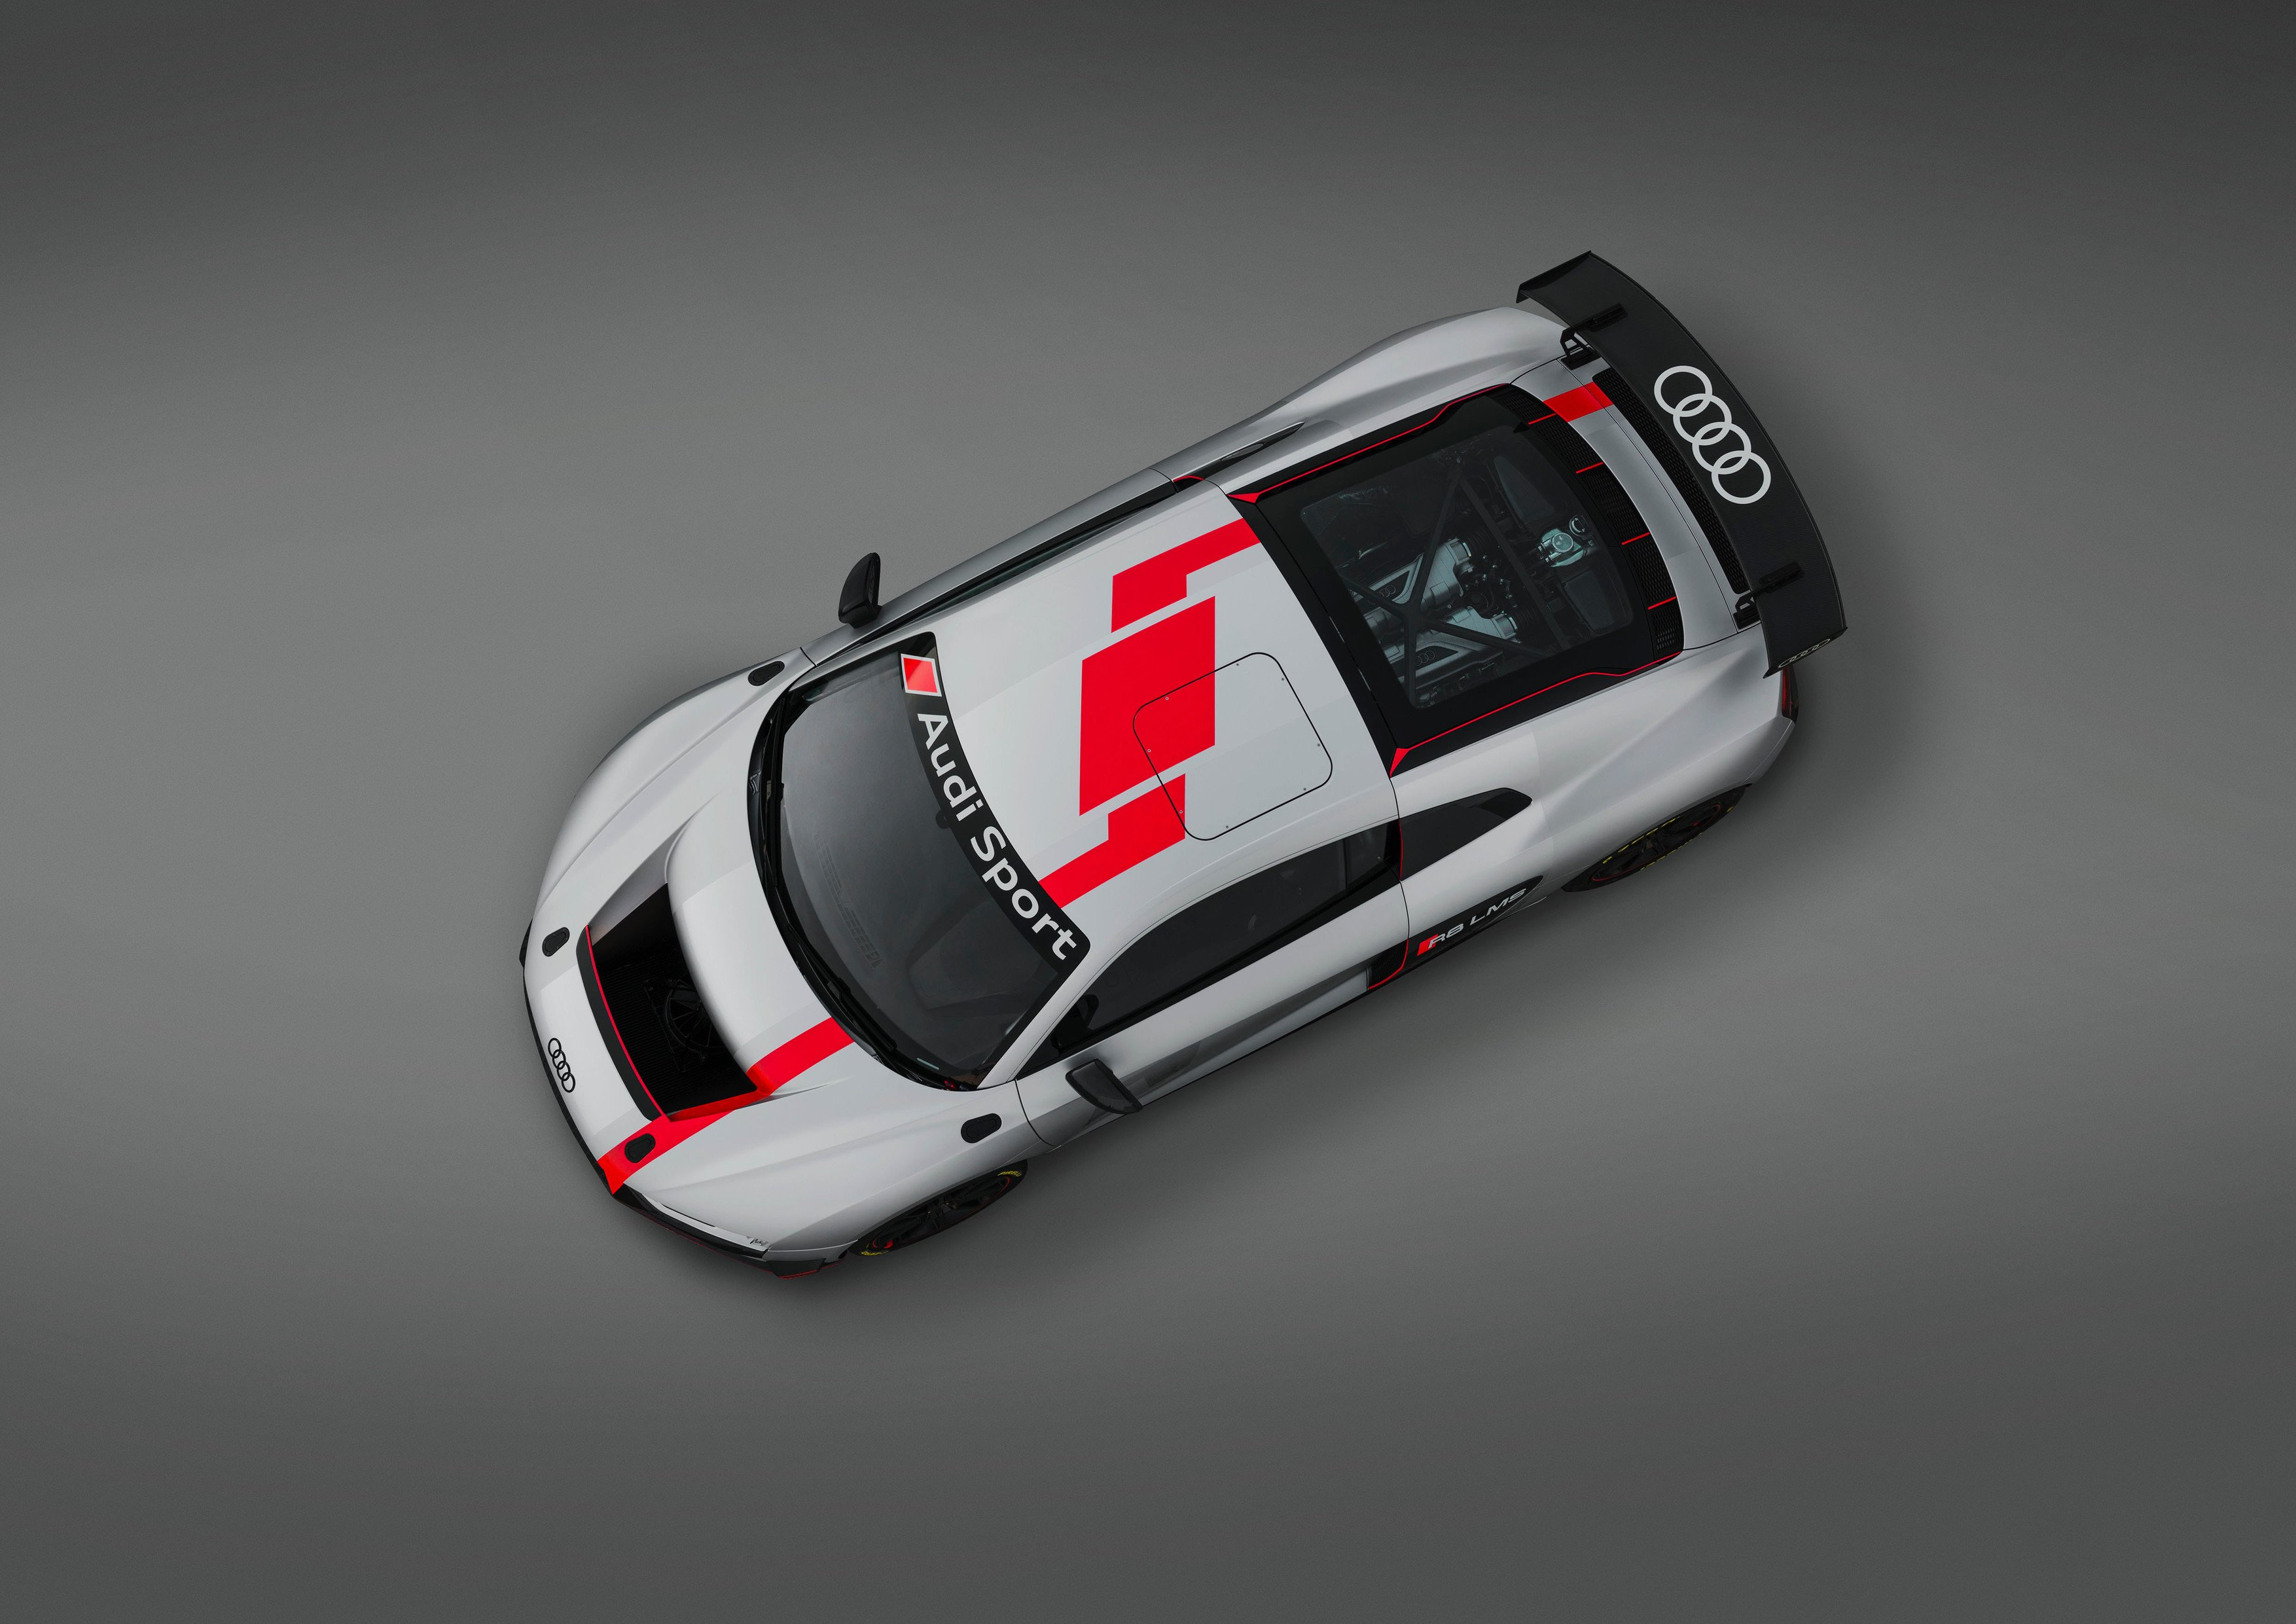 Audi R8 Lms Gt4 Top View, HD Cars, 4k Wallpapers, Images, Backgrounds, Photos and Pictures